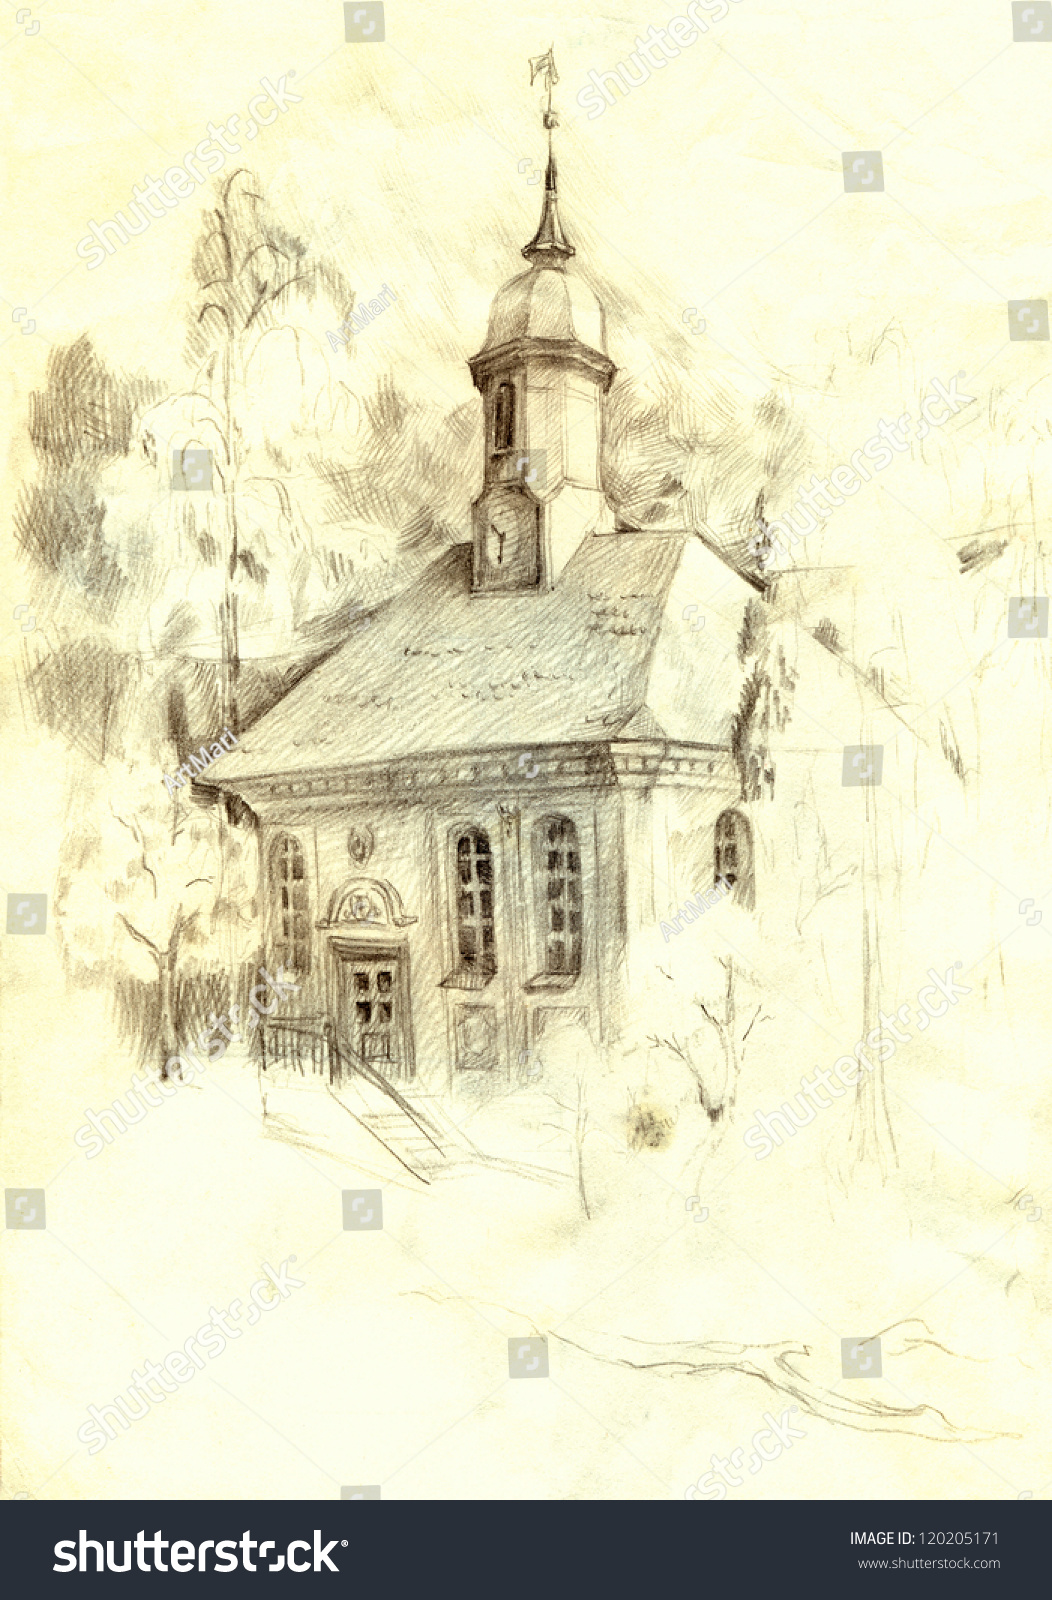 Pencil Architectural Illustration : Architectural pencil sketch old church spreading stock